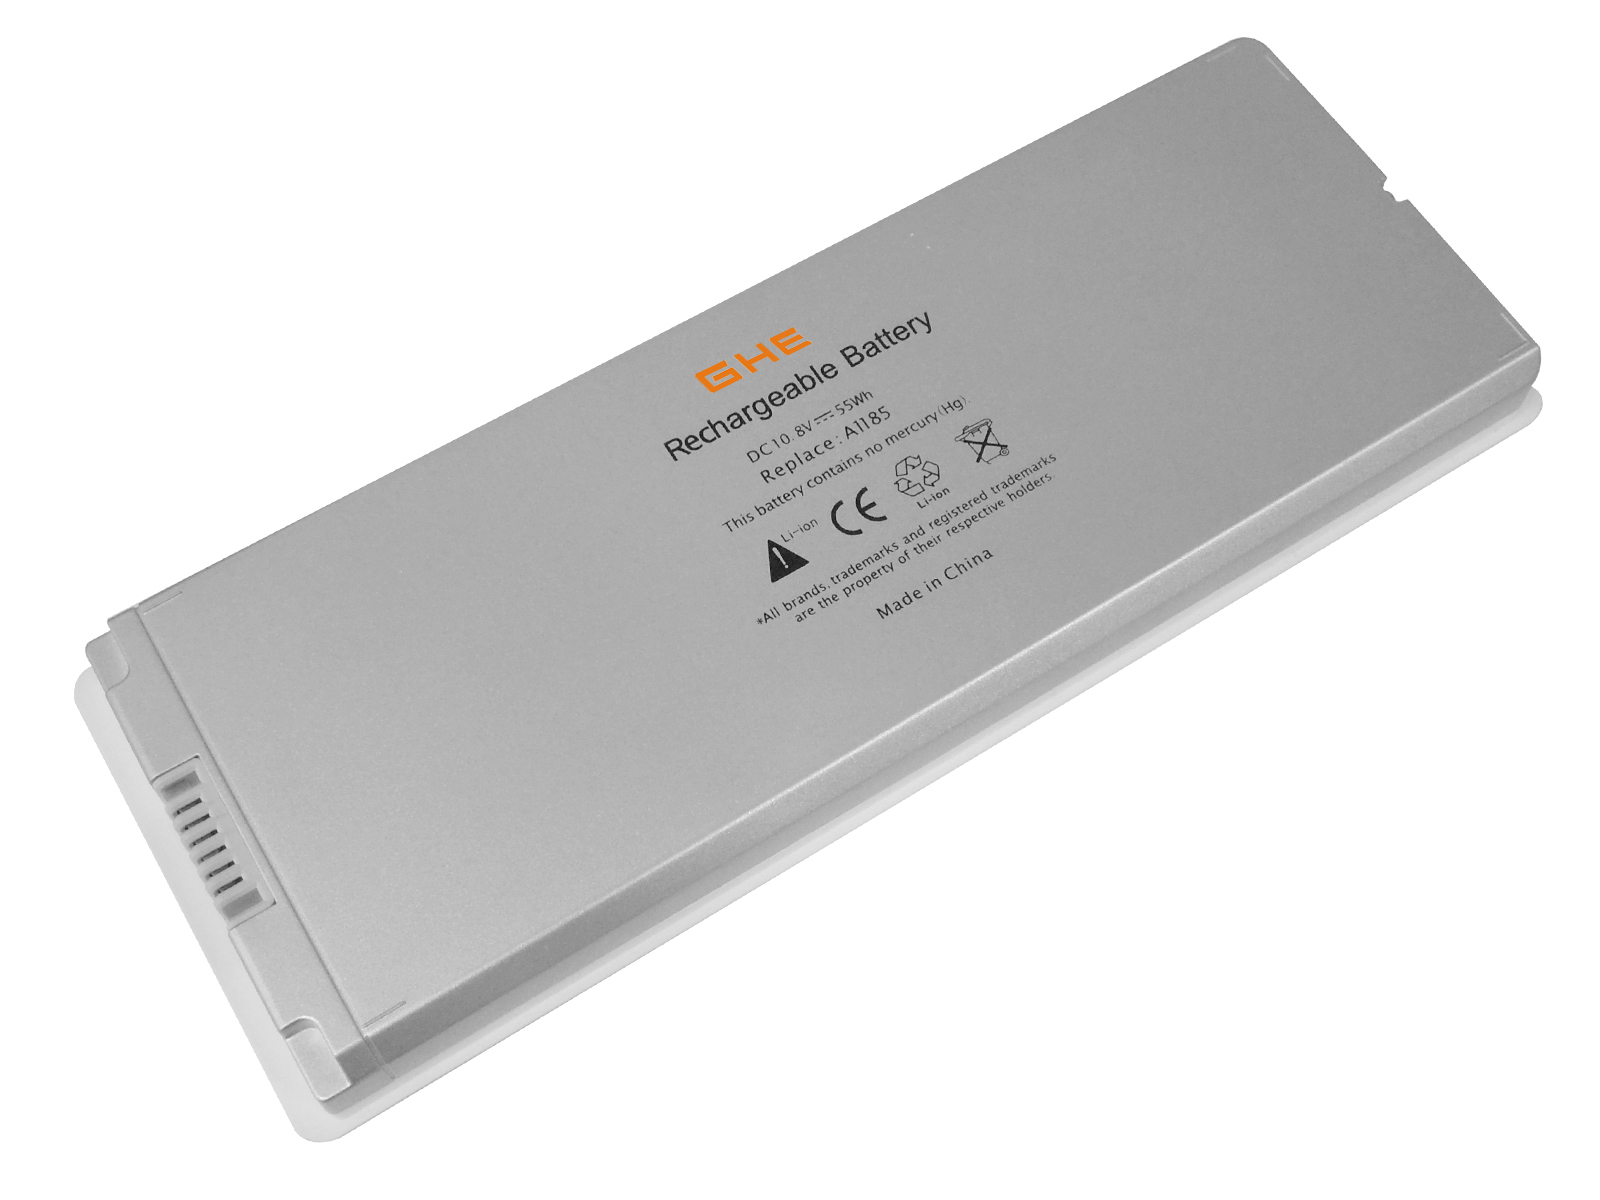 "6 Cell Laptop Battery for Apple MacBook 13"" 13.3"" A1181 A1185 MA561 MA566 White"